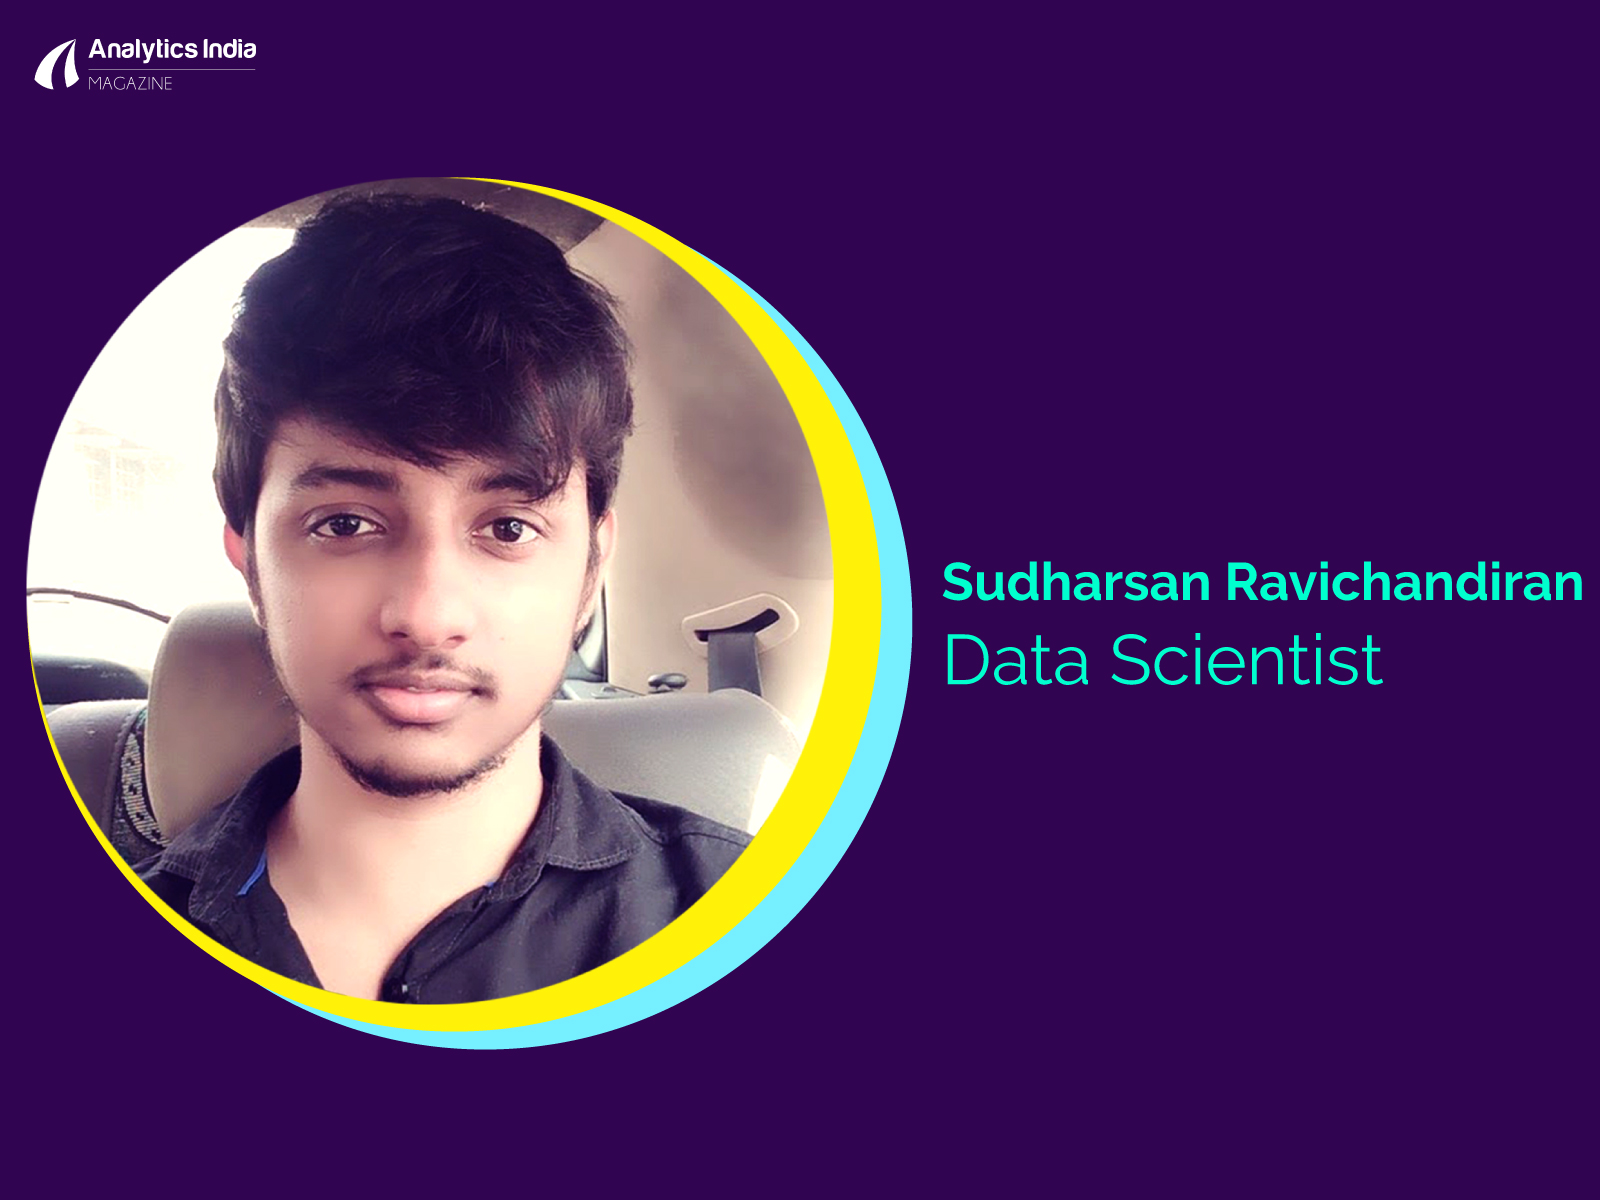 Sudharshan Ravichandiran, Data Scientist at Param.ai